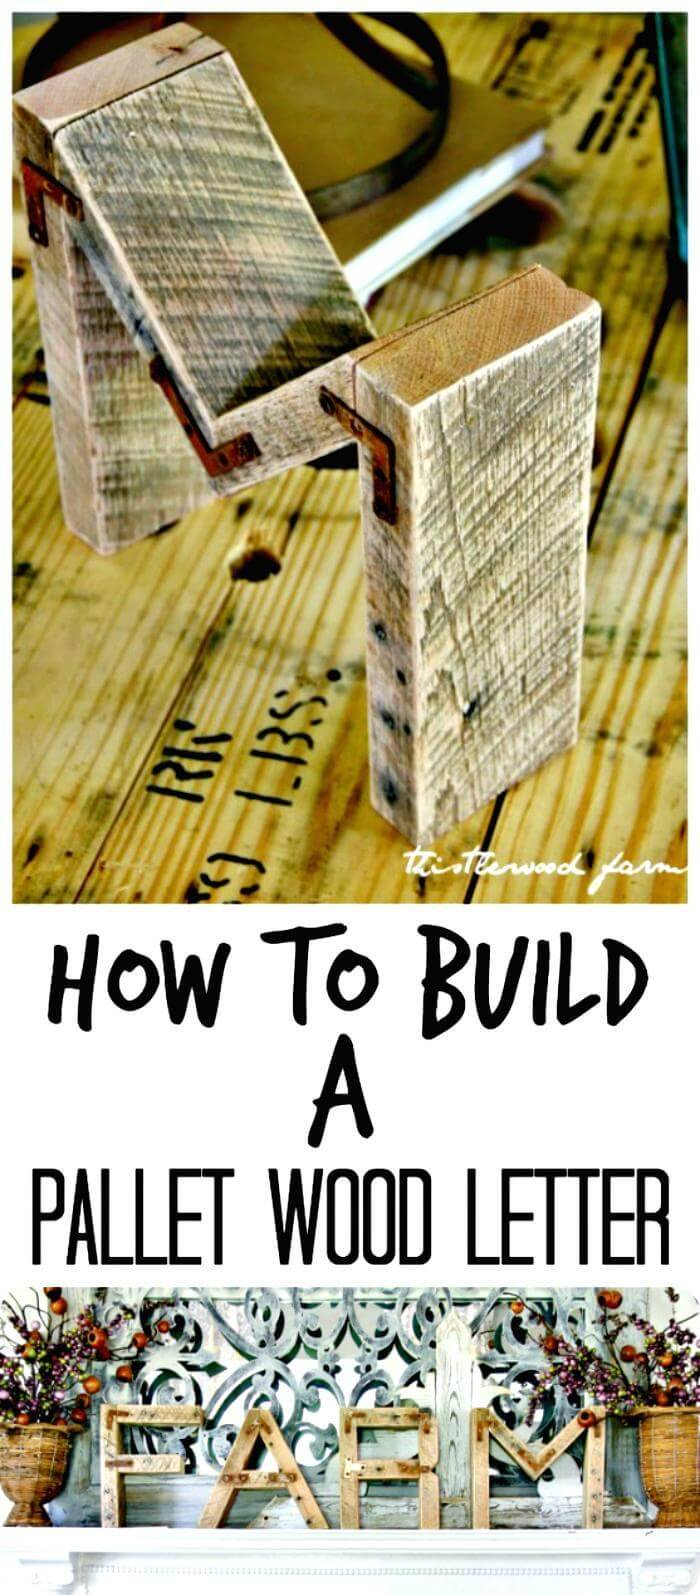 How To Make a Pallet Wood Letter - DIY Project